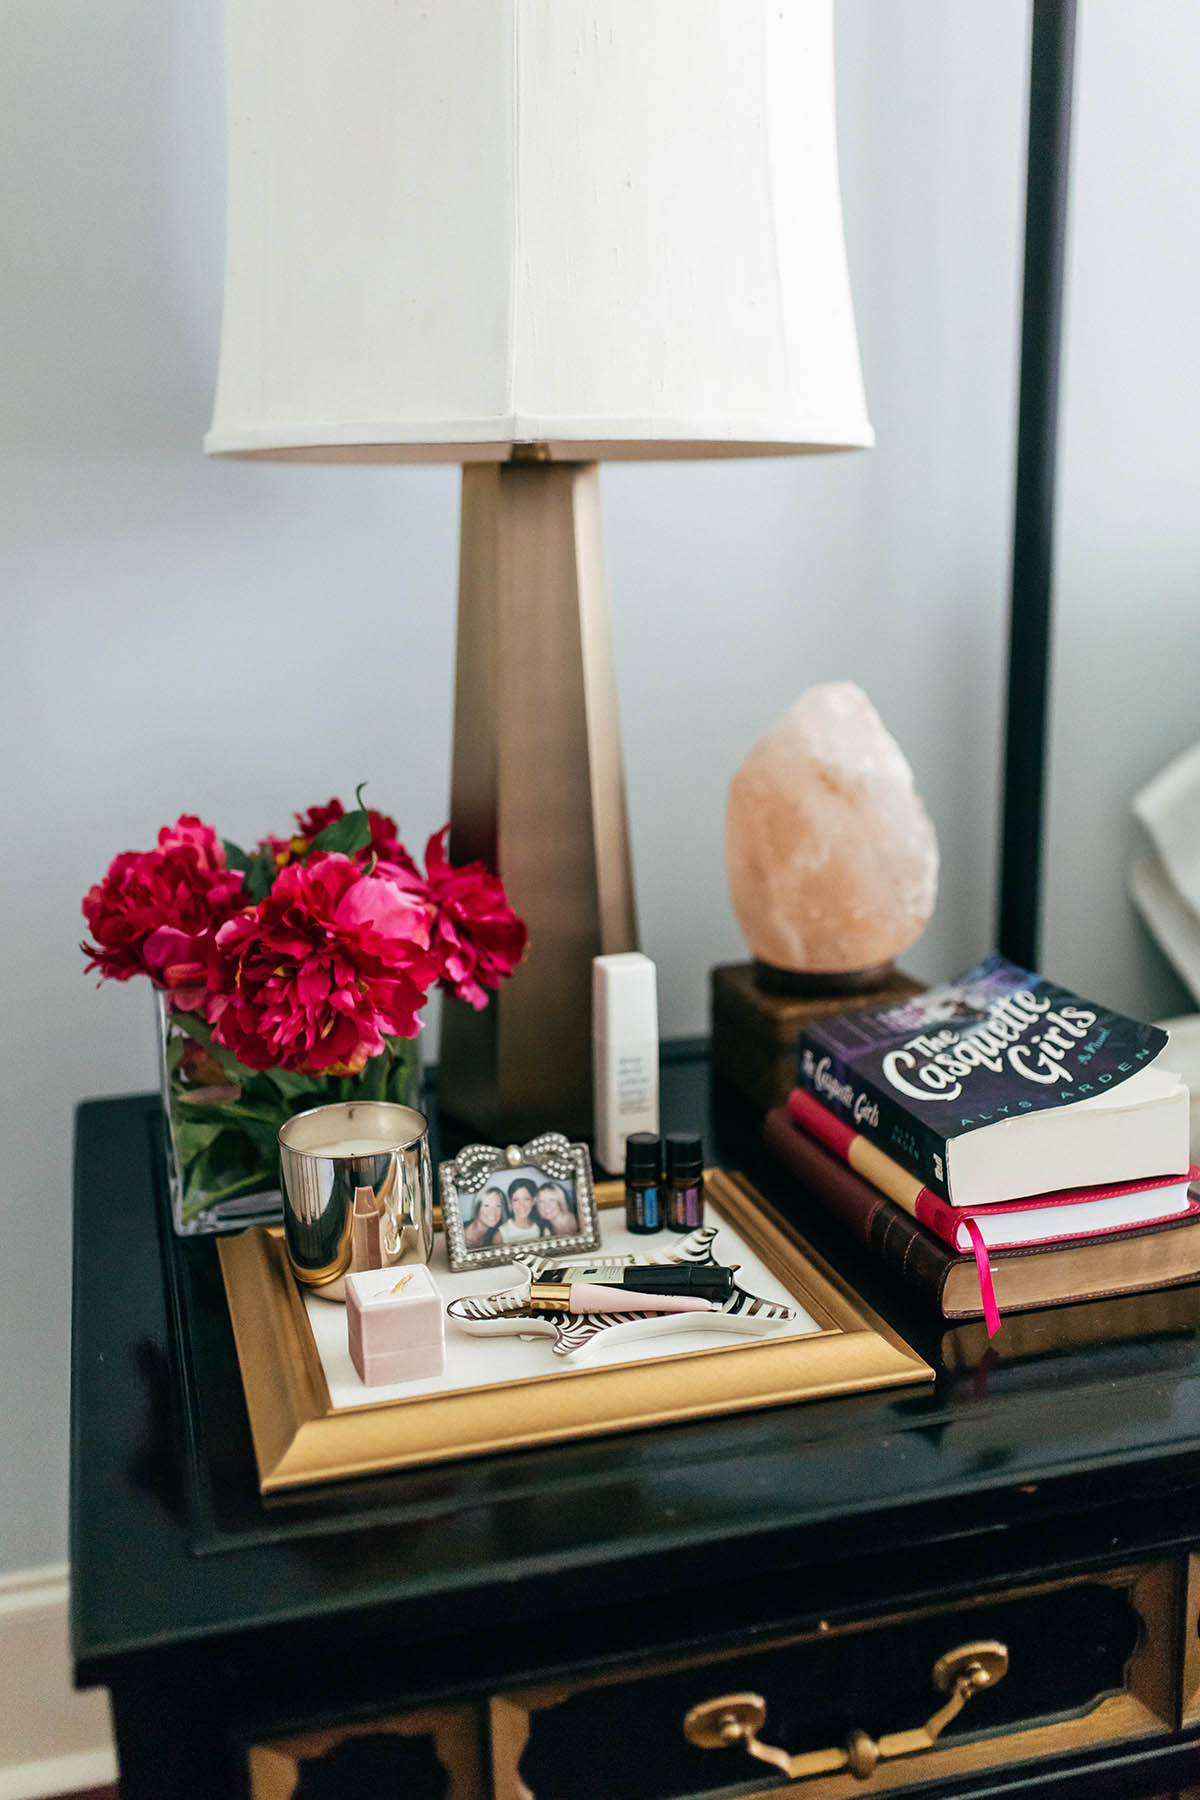 Master Bedroom Inspiration   How to Create a Space For Positivity   Pretty Bedroom Organization   Himalayan Salt Lamp